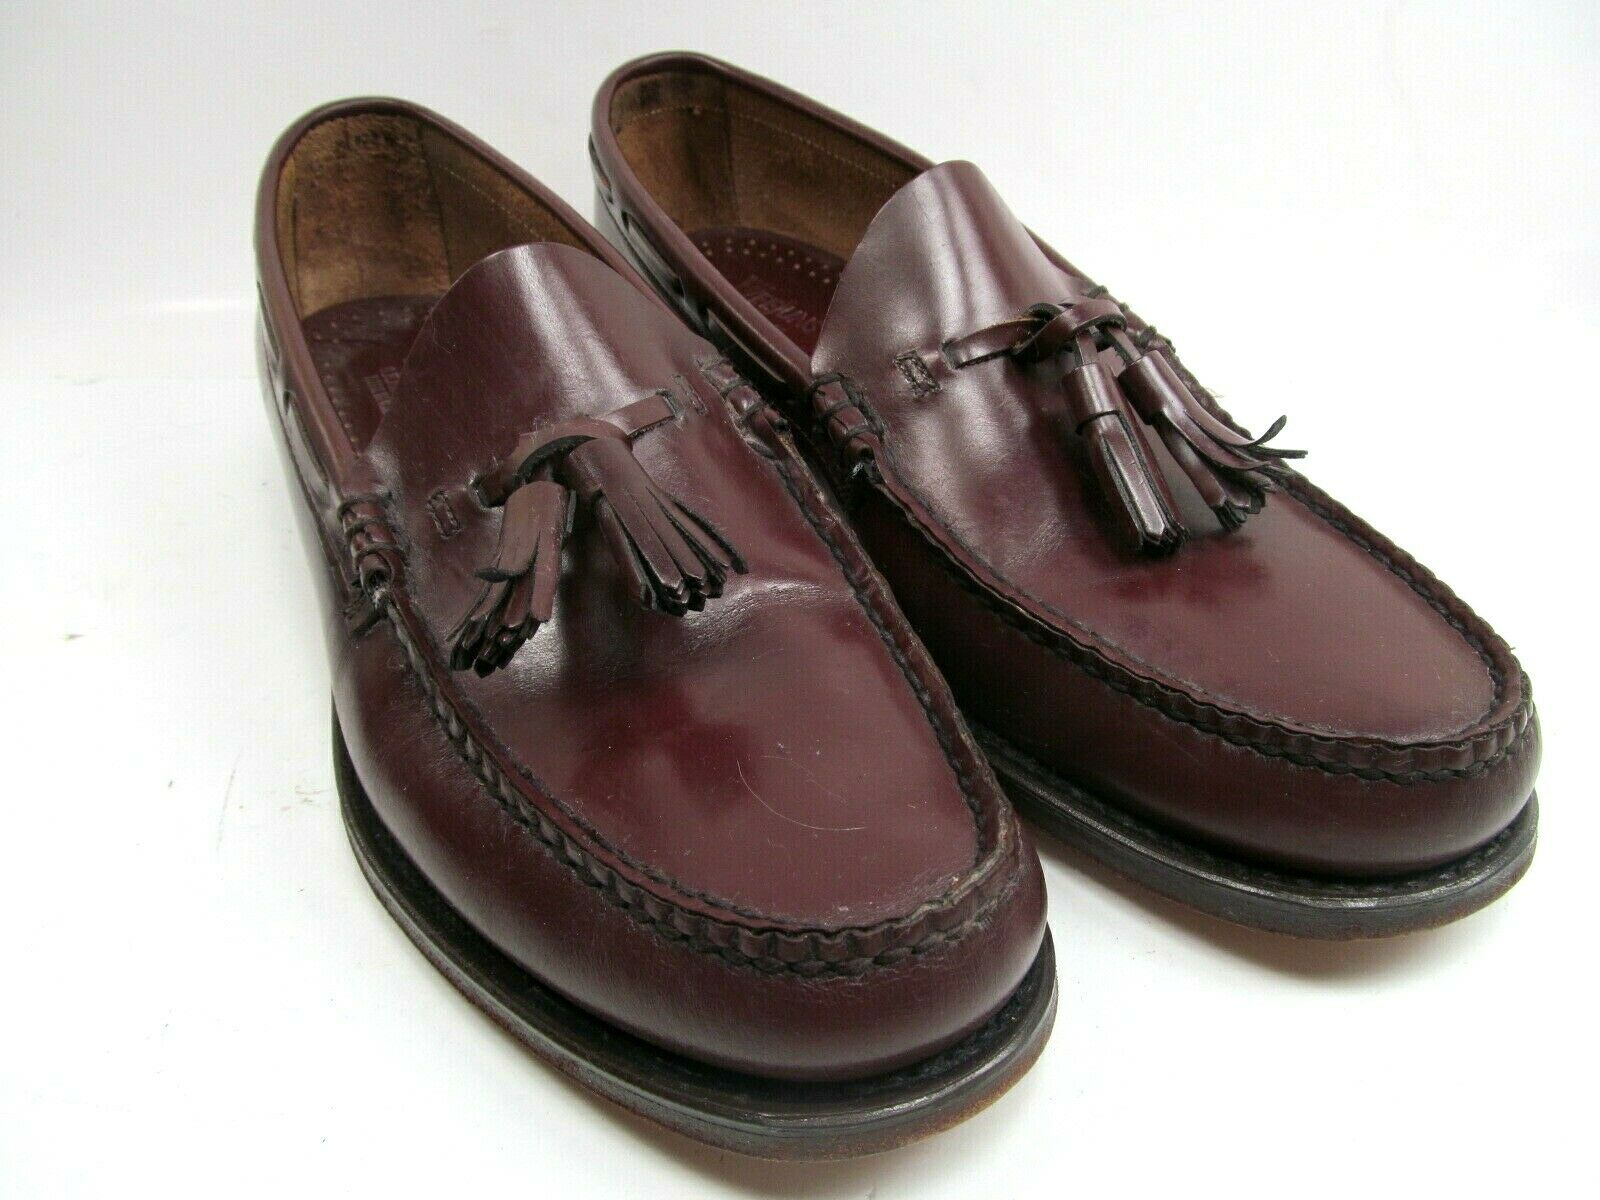 Bass Weejuns Mens Burgundy Leather Tassel Loafers Size US 10 B Wilton, Maine USA